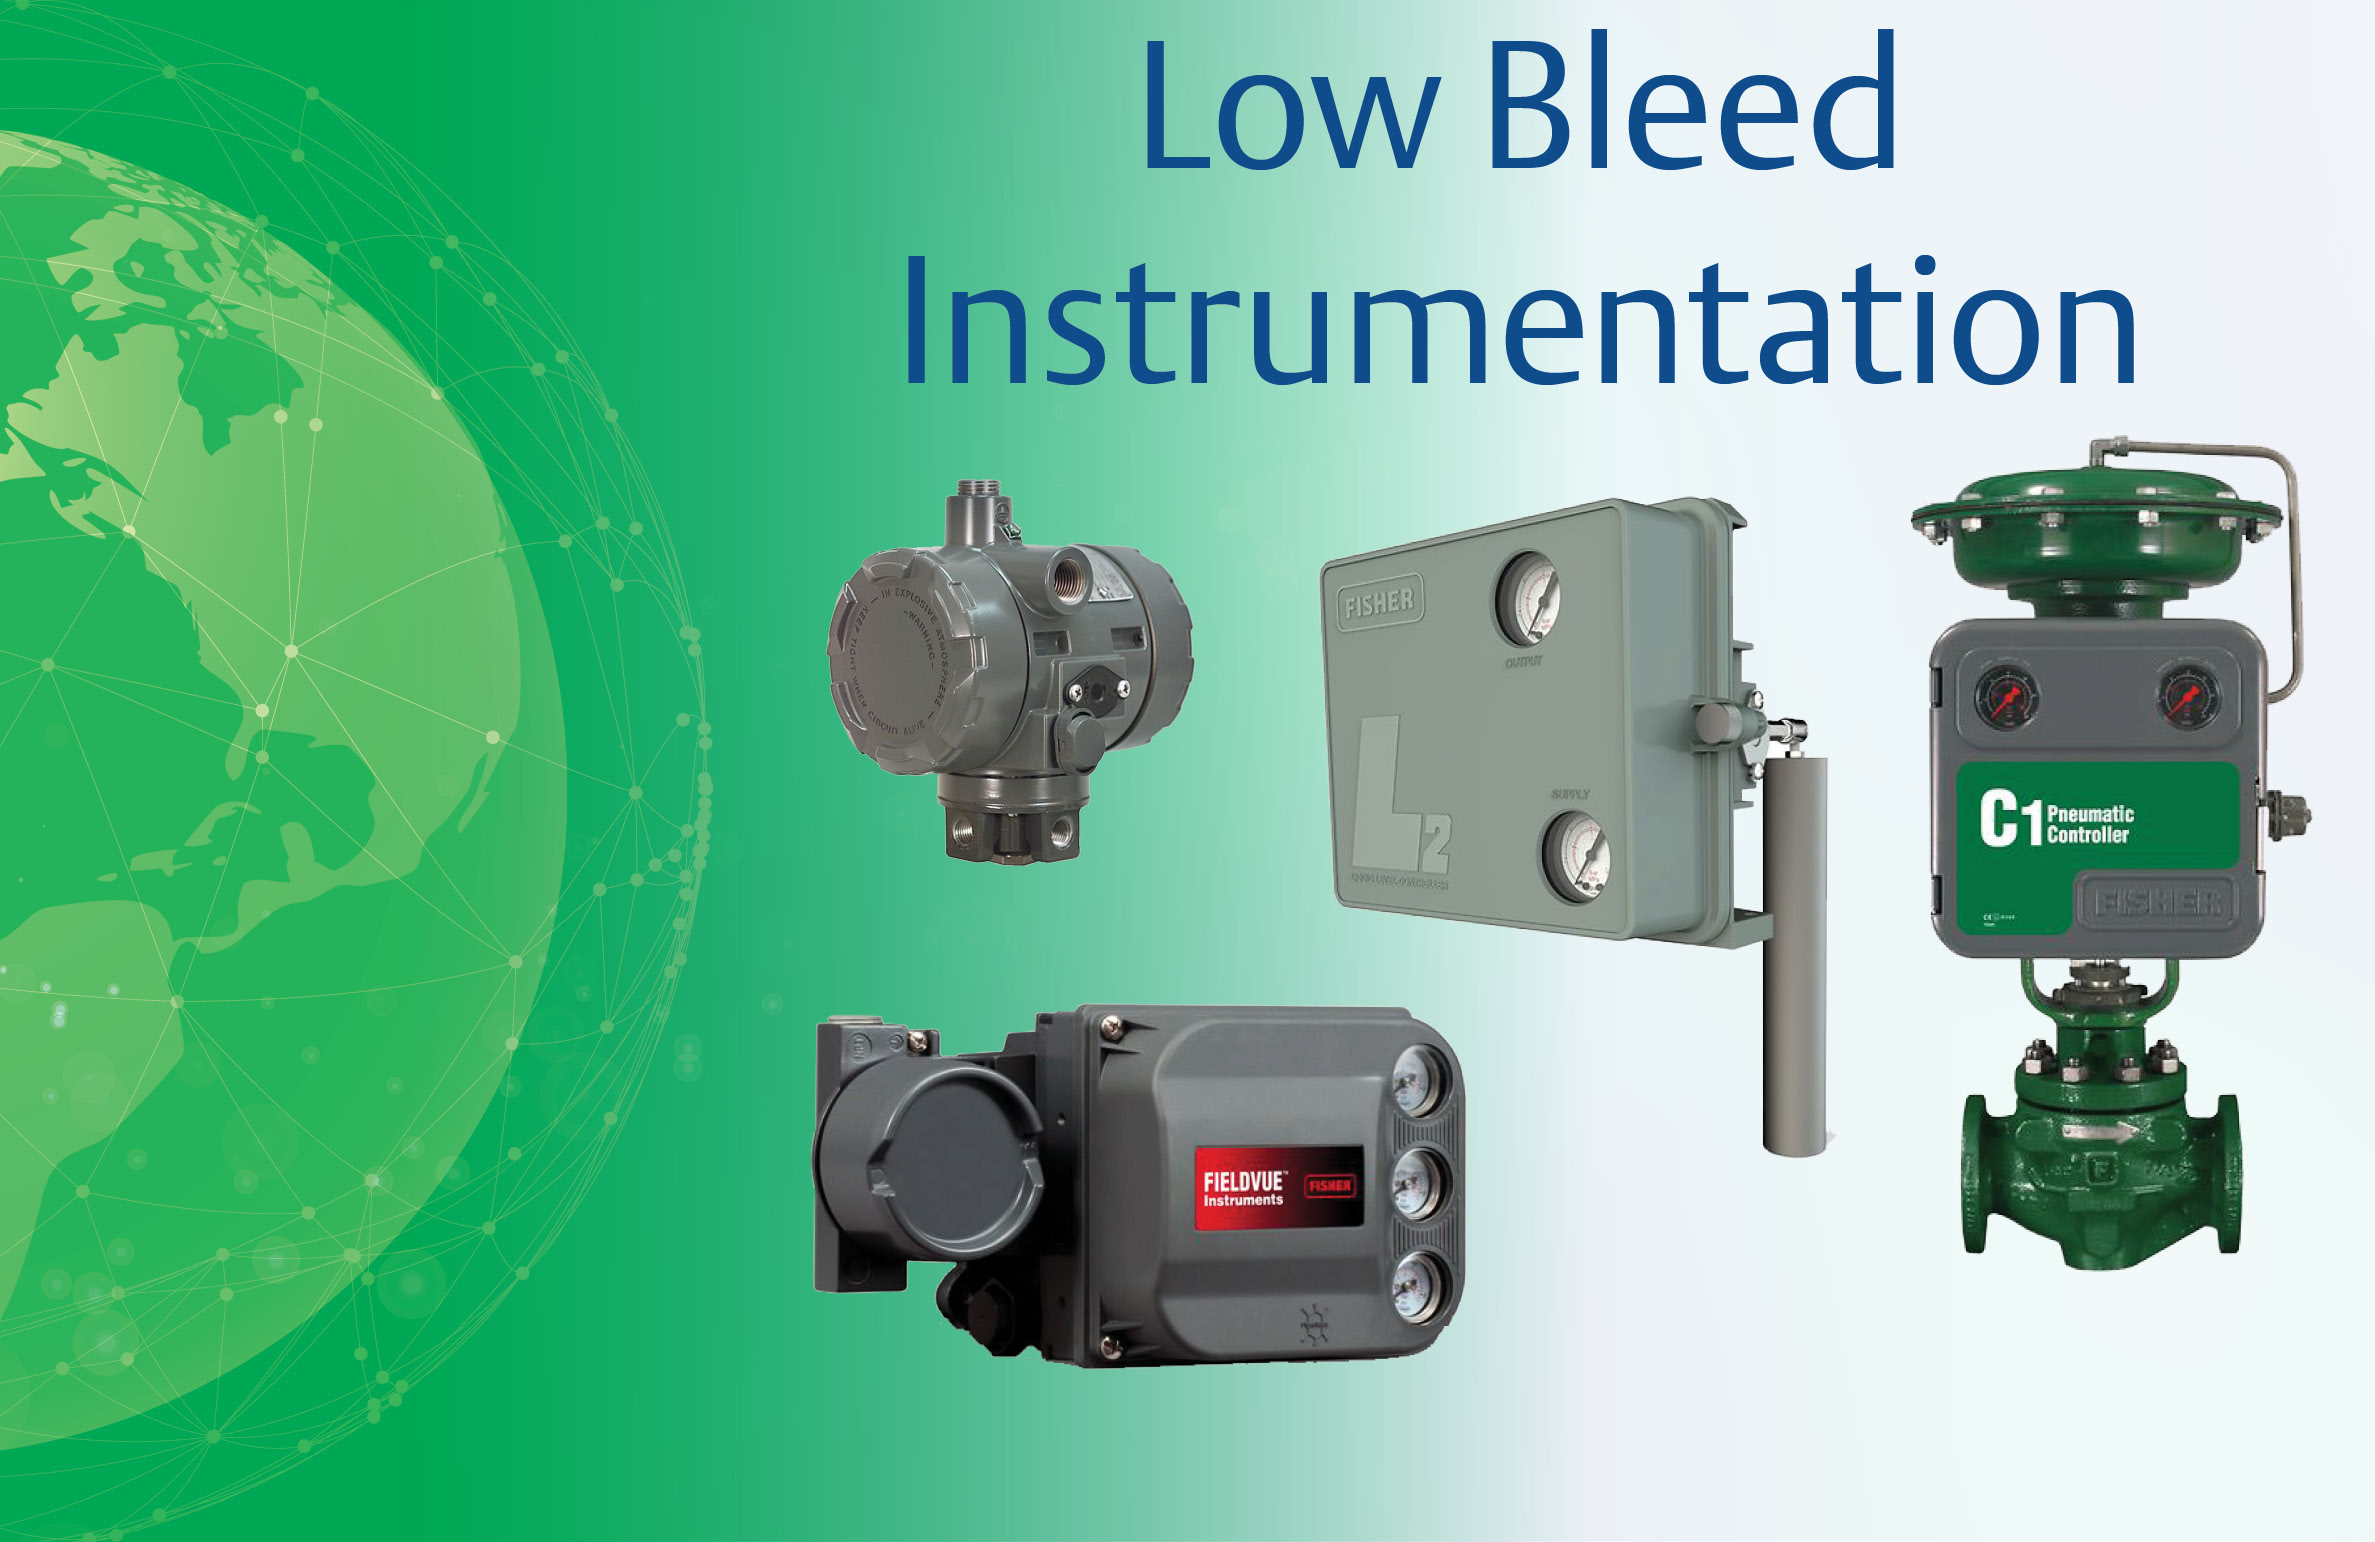 Mitigate Fugitive Emissions Economically and Effectively with Low Bleed Instrumentation